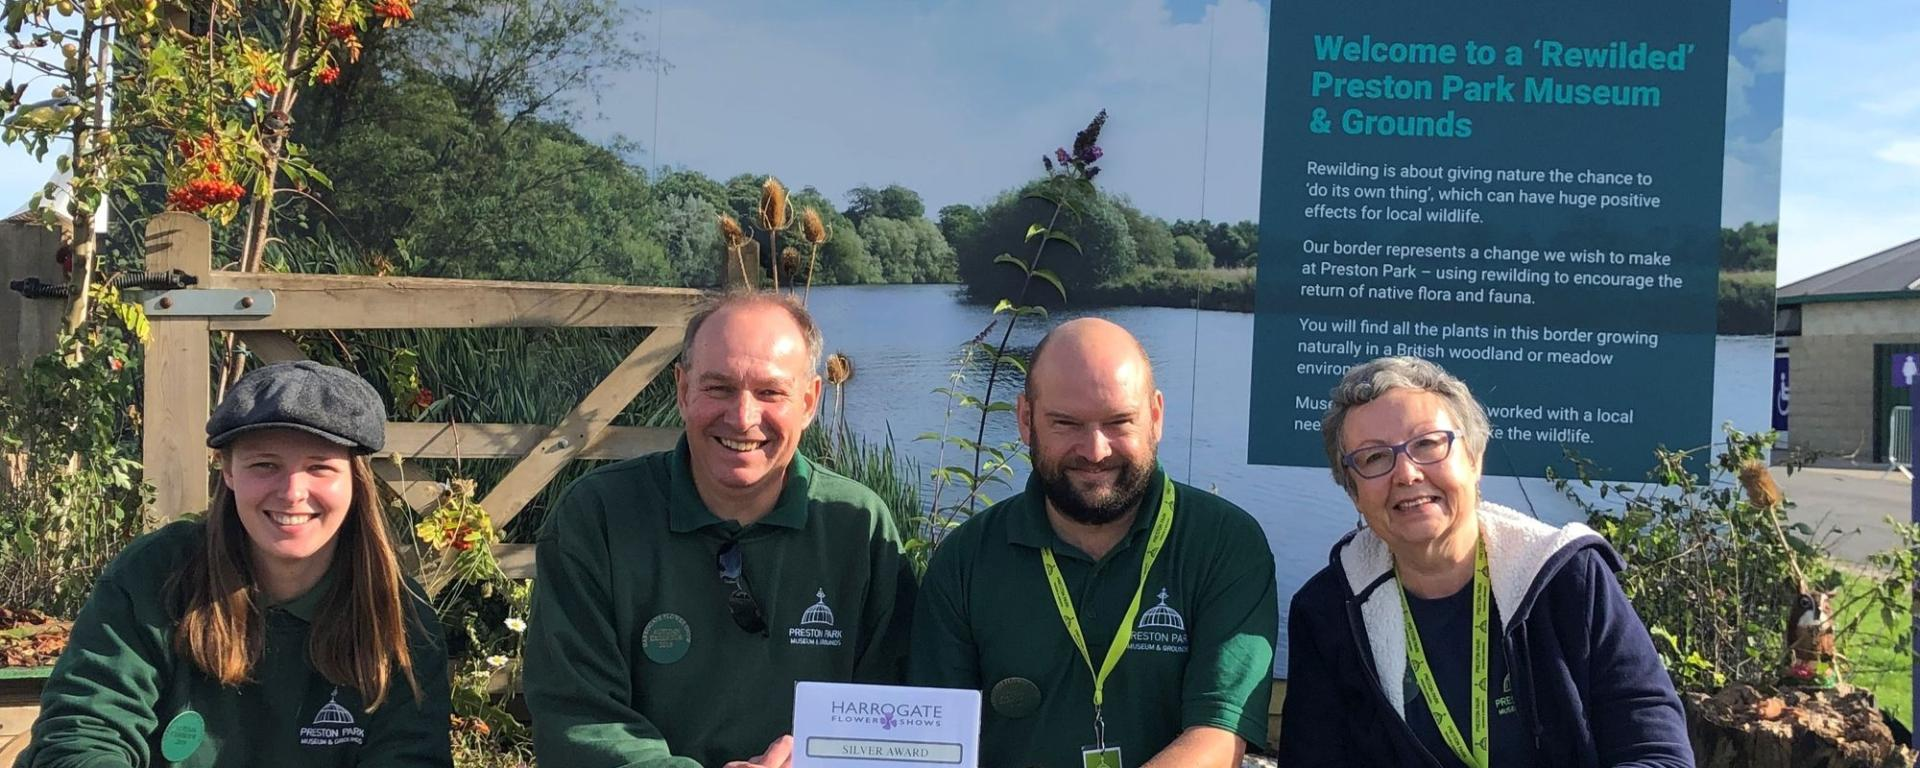 Park Rangers And Volunteers Accepting A Silver Award For The Show Border At The Harrogate Flower Show 2019